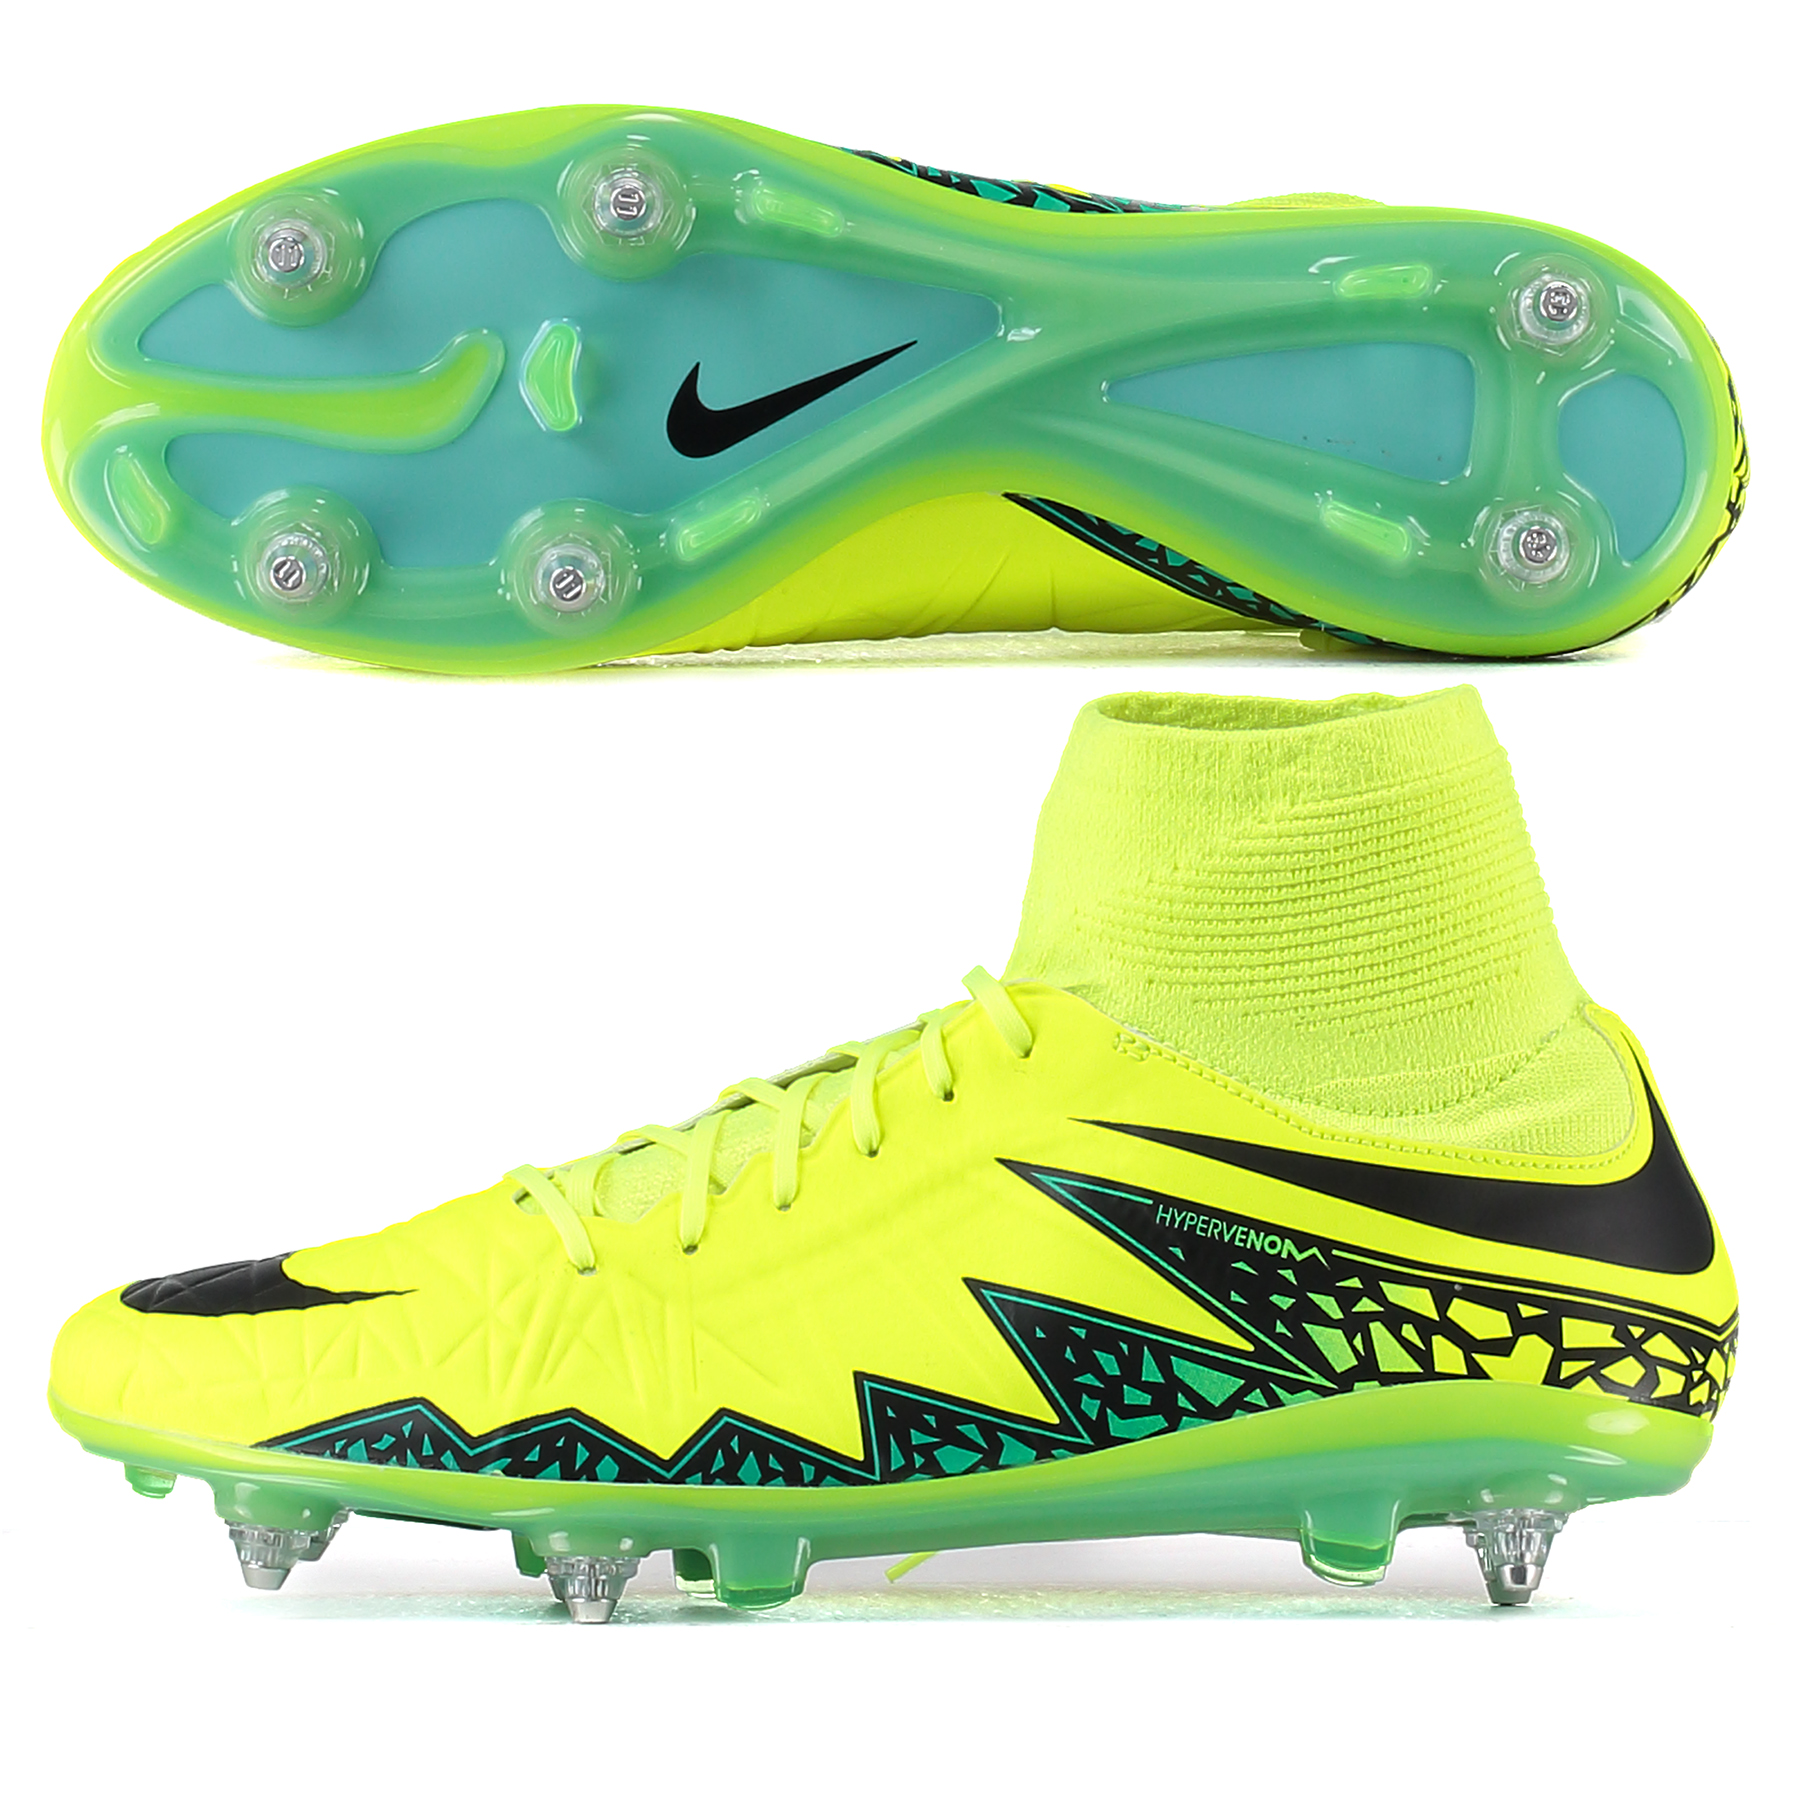 Nike Hypervenom Phatal II Df Soft Ground-Pro Football Boots - Volt/Bla